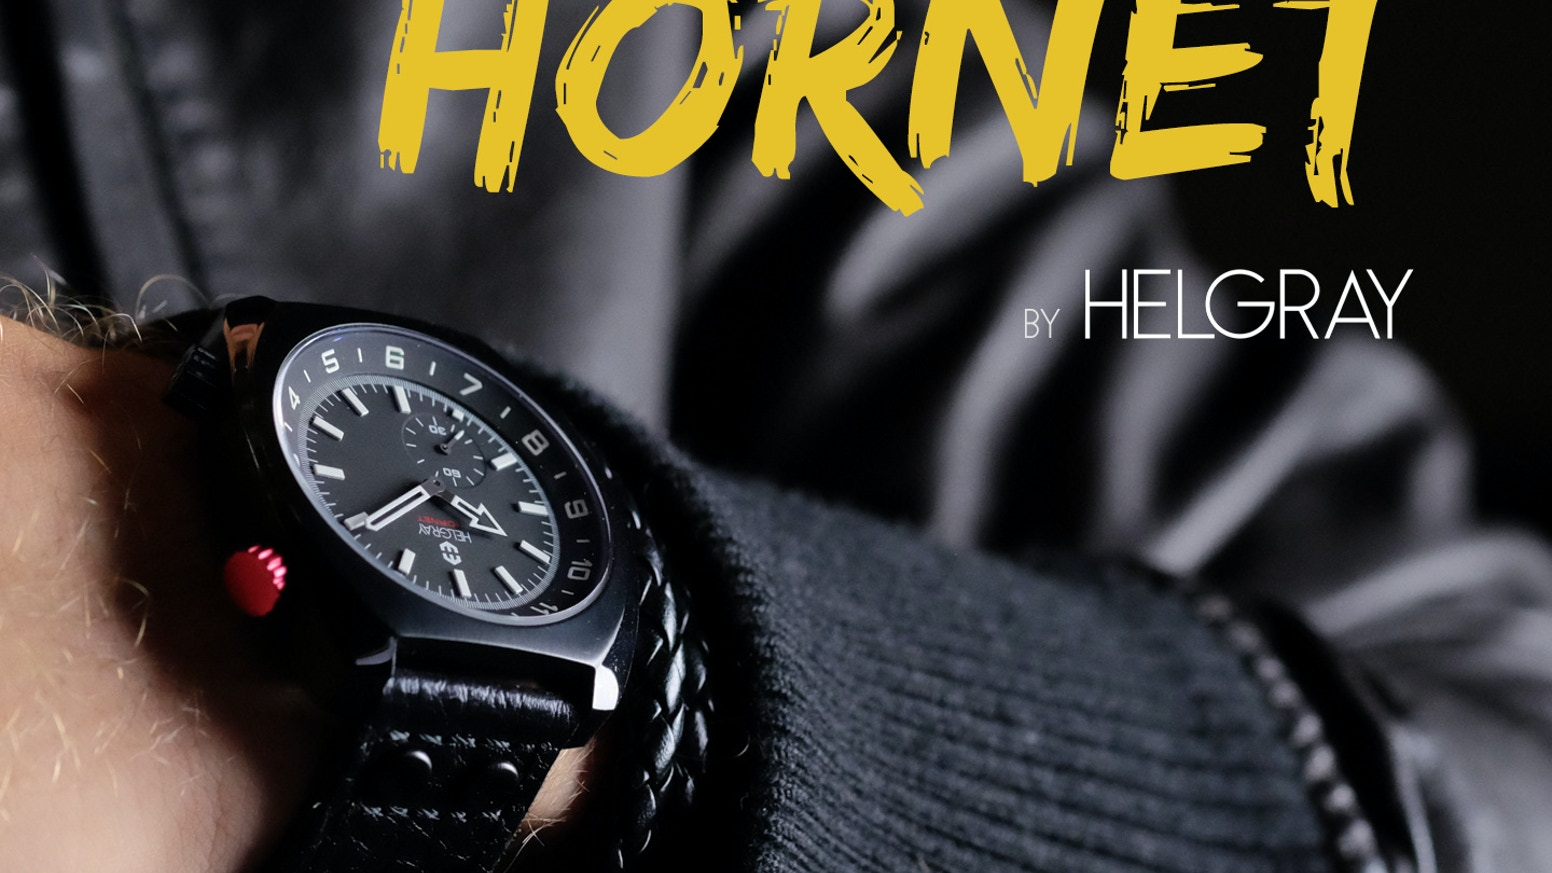 Watches inspired by 1980's fighter jets & pilot watches. Overbuilt. Reliable. Packed with ridiculous value. Say 'no' to boring.